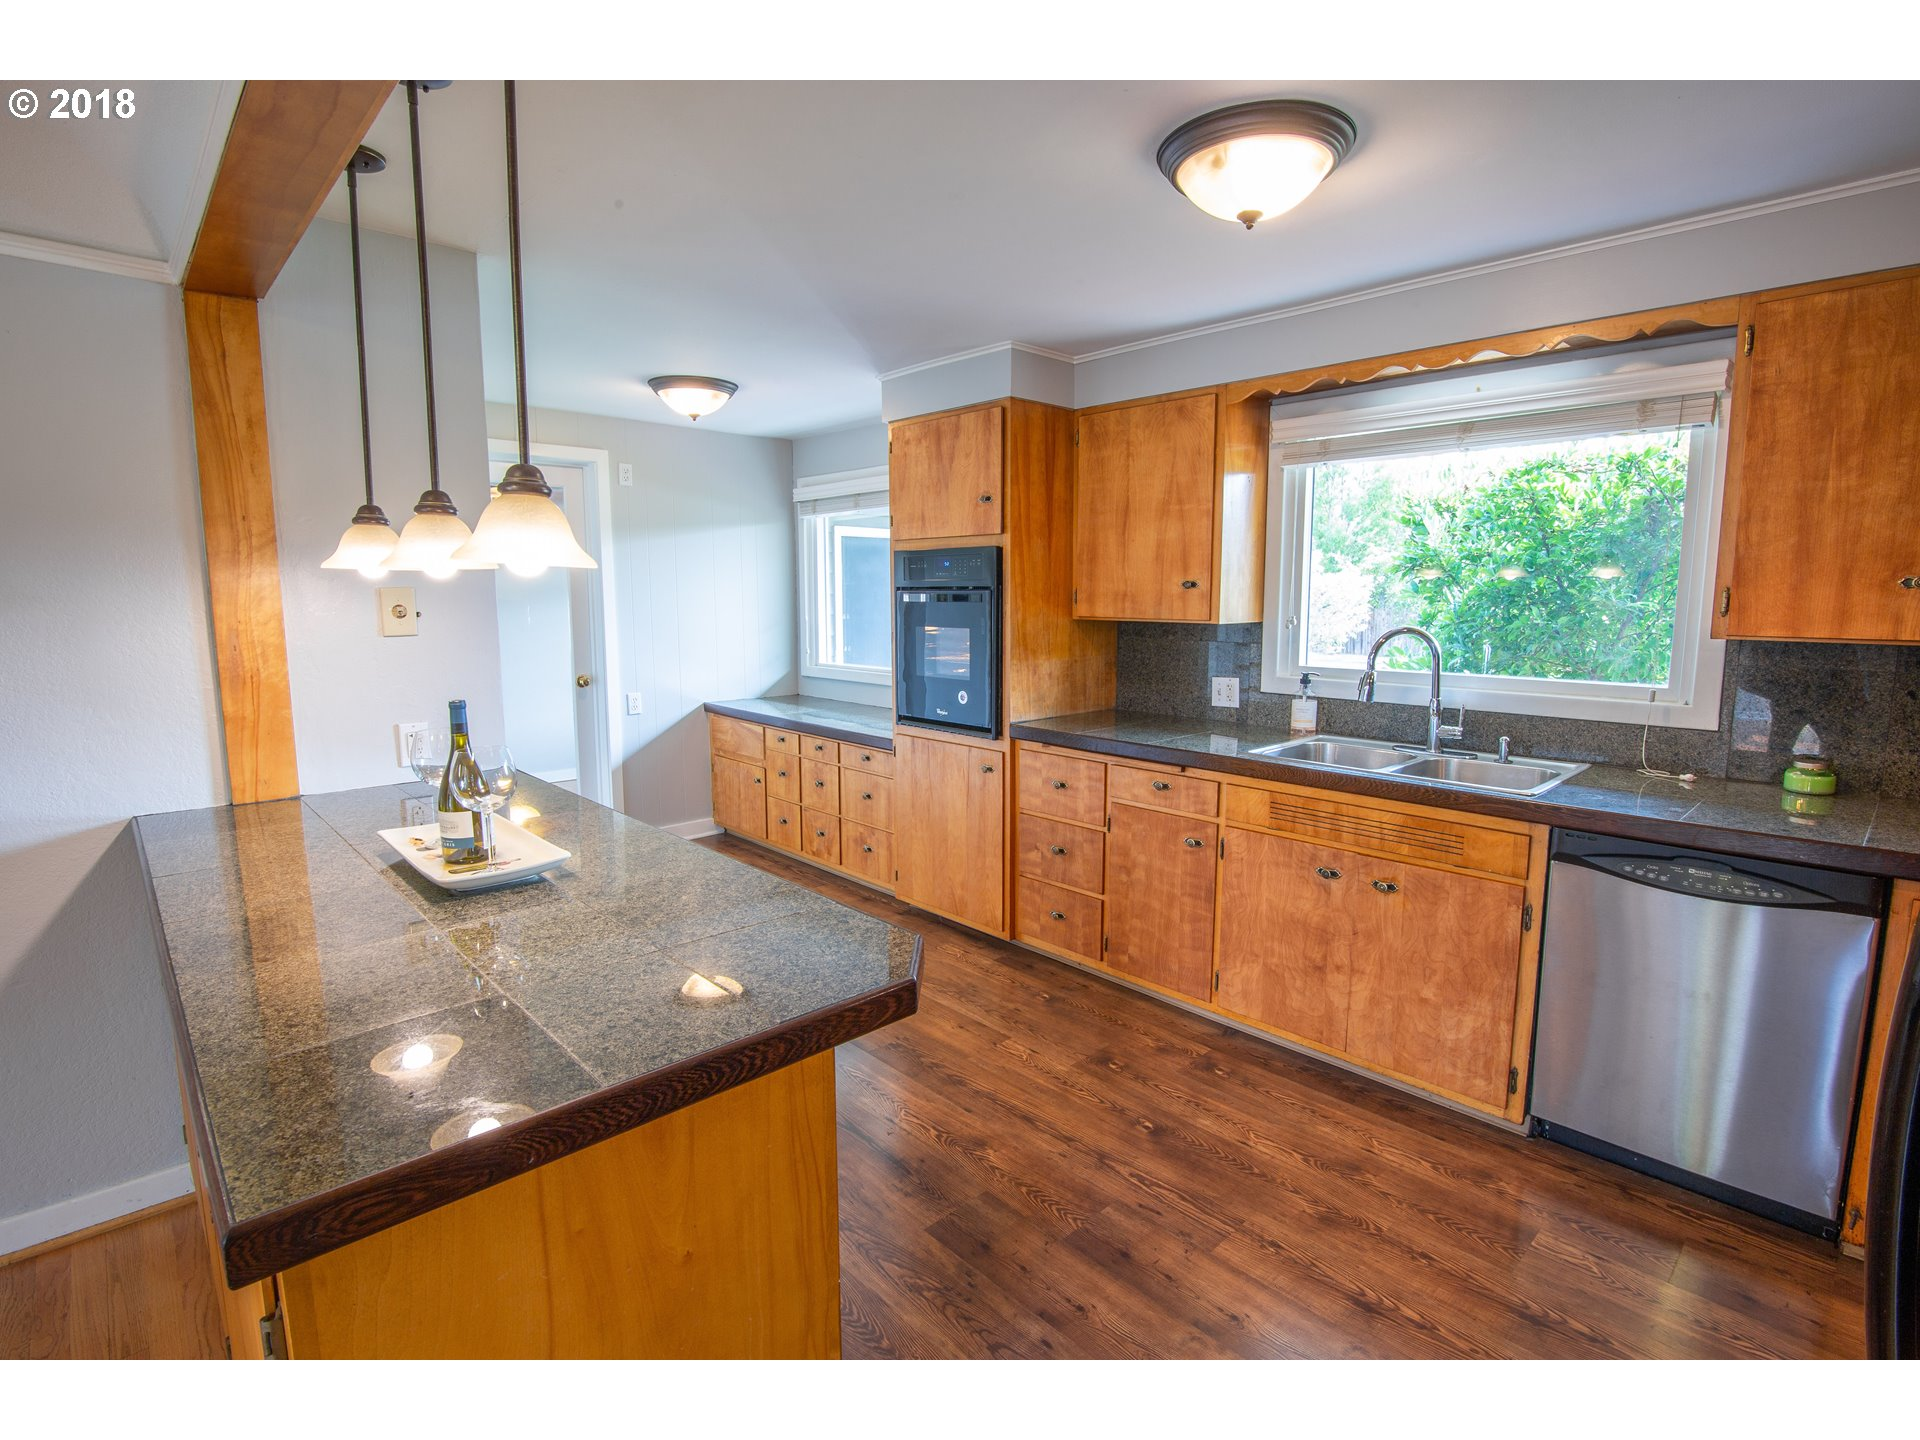 985 W 18TH AVE Eugene, OR 97402 - MLS #: 18613280